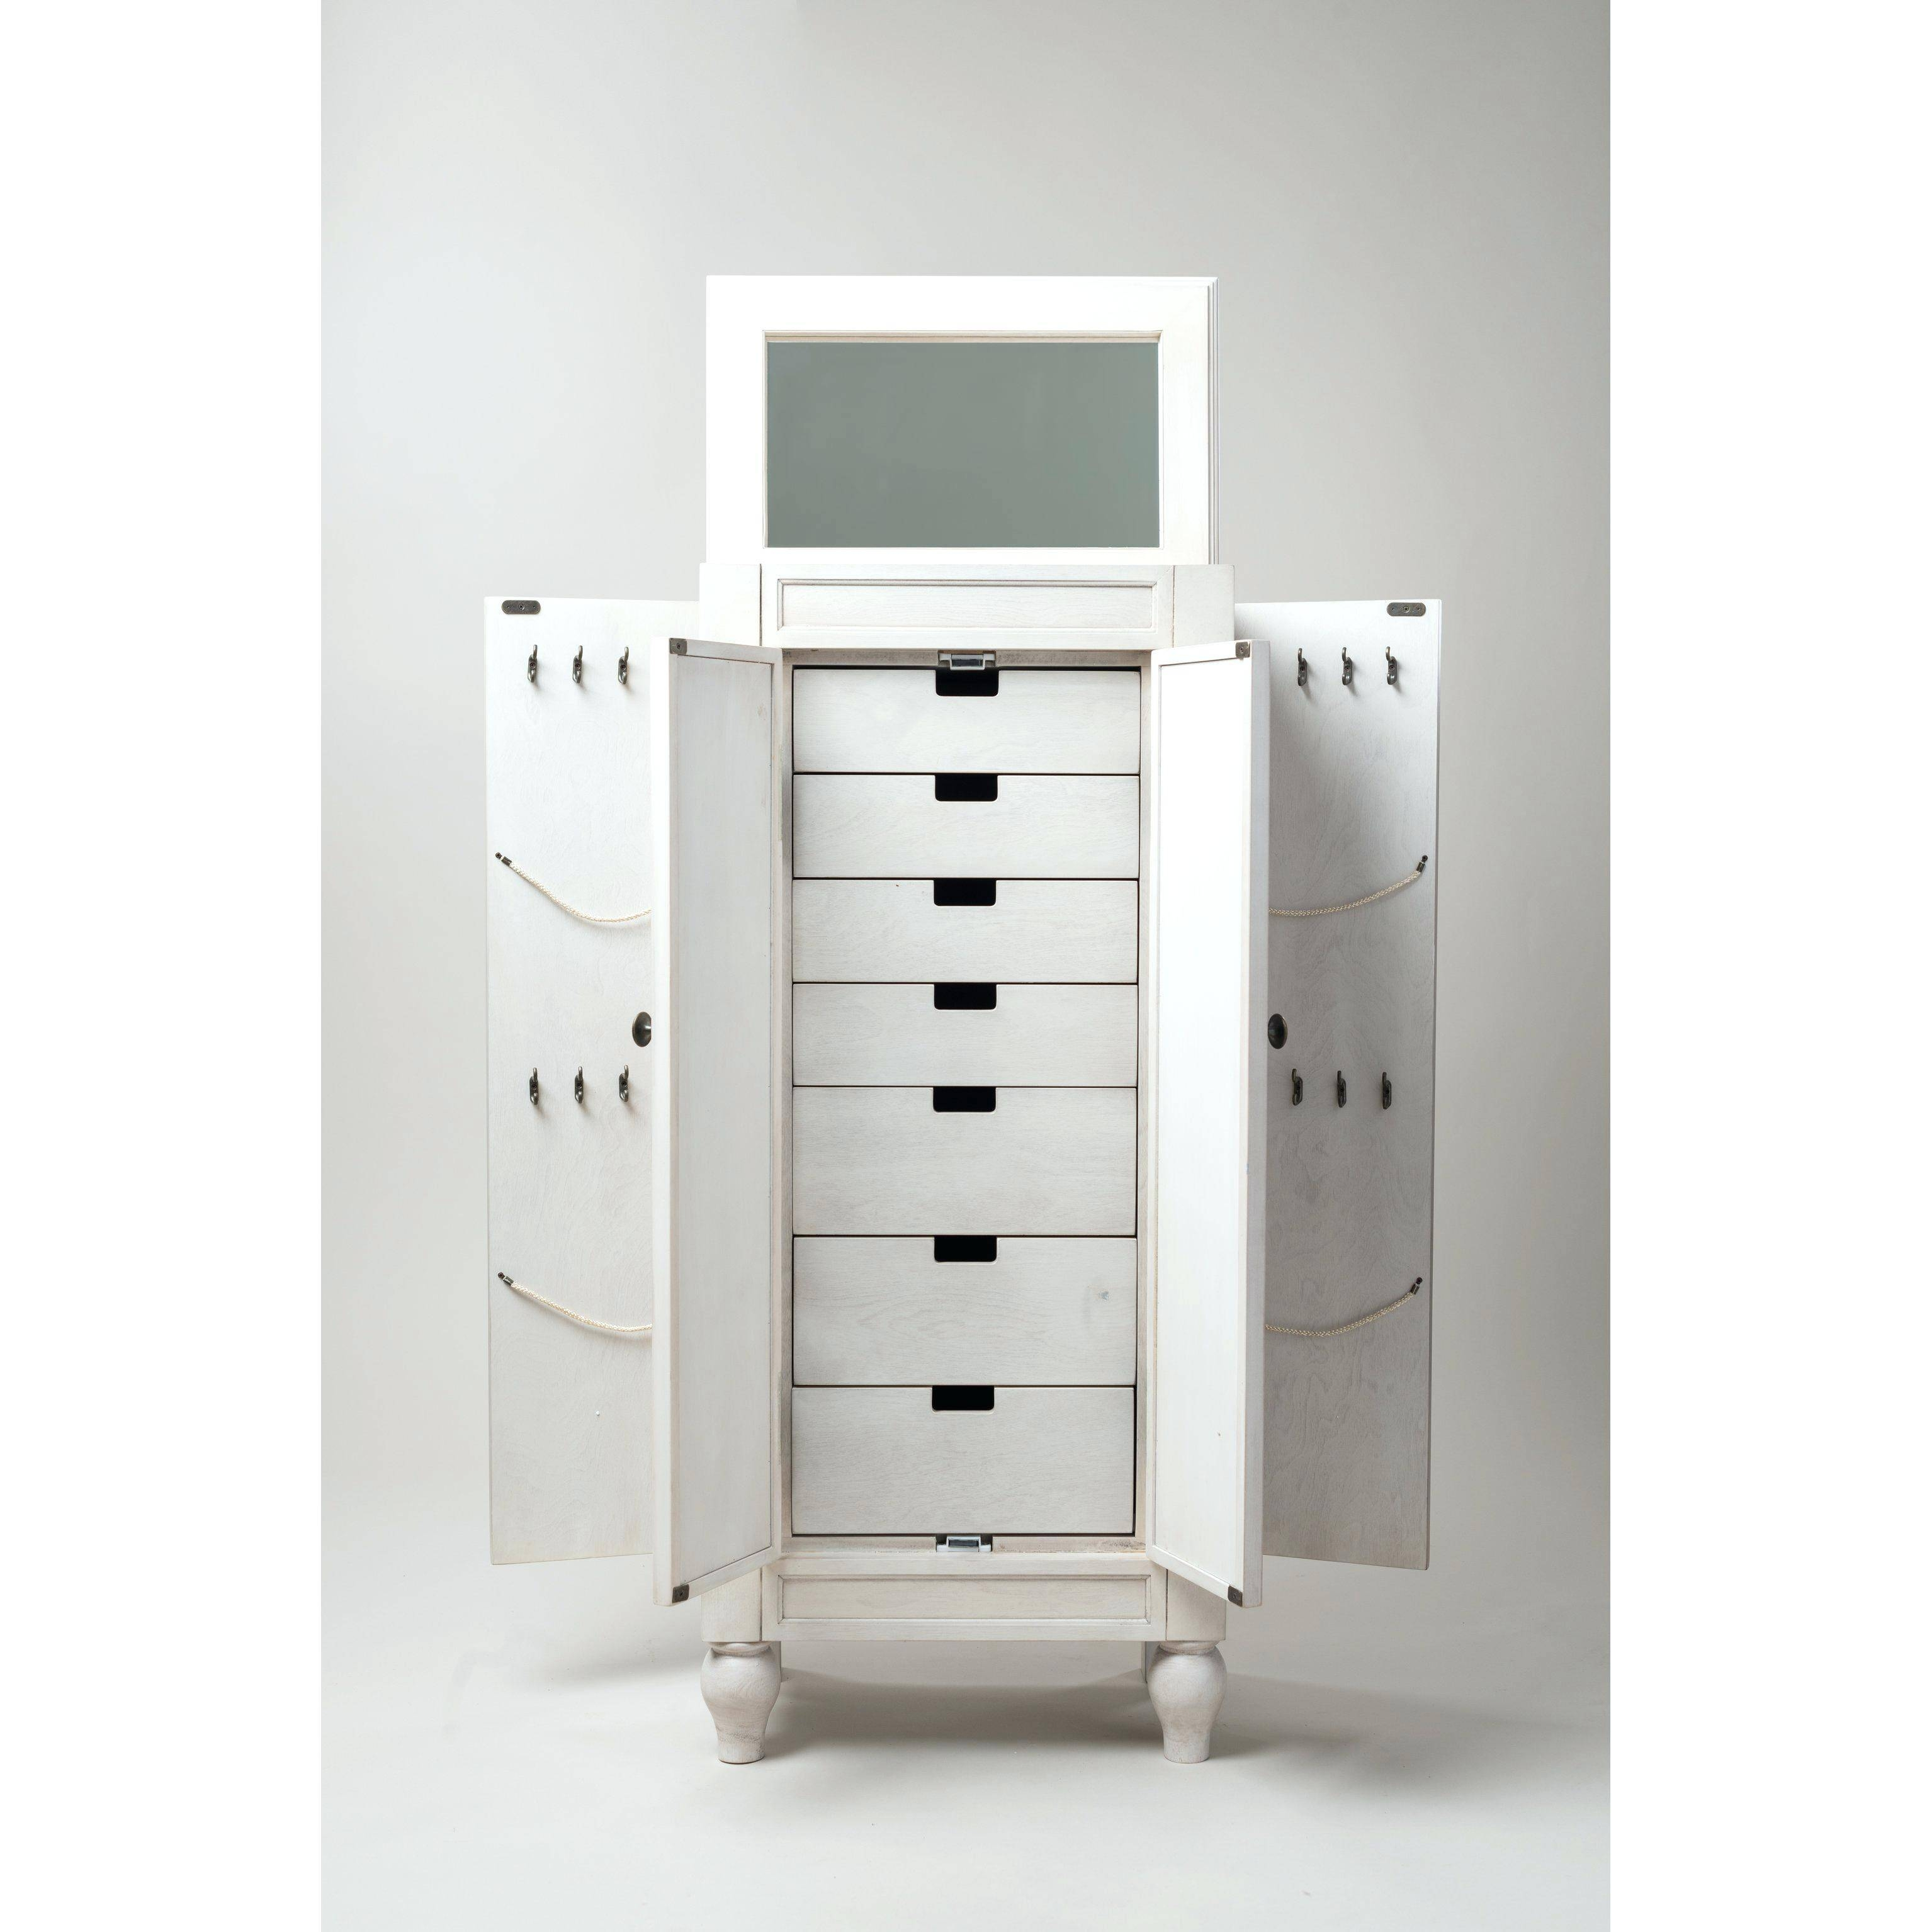 Bedroom : Wardrobe Cabinet Small Wardrobe Wardrobes With Sliding with regard to Small Wardrobes (Image 3 of 15)